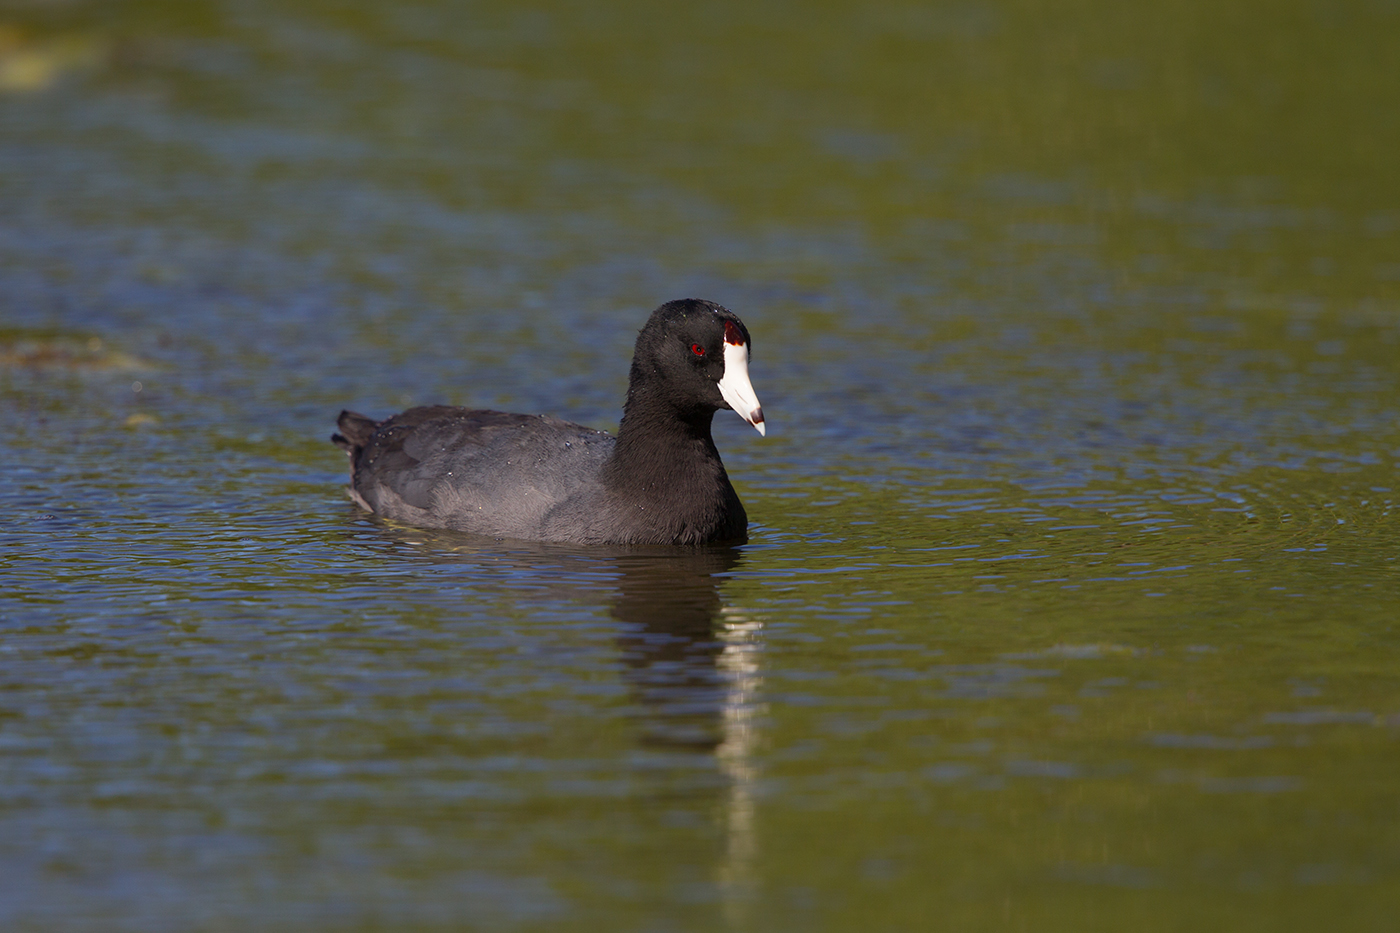 AMERICAN COOT - HIDALGO COUNTY TX MARCH 2017